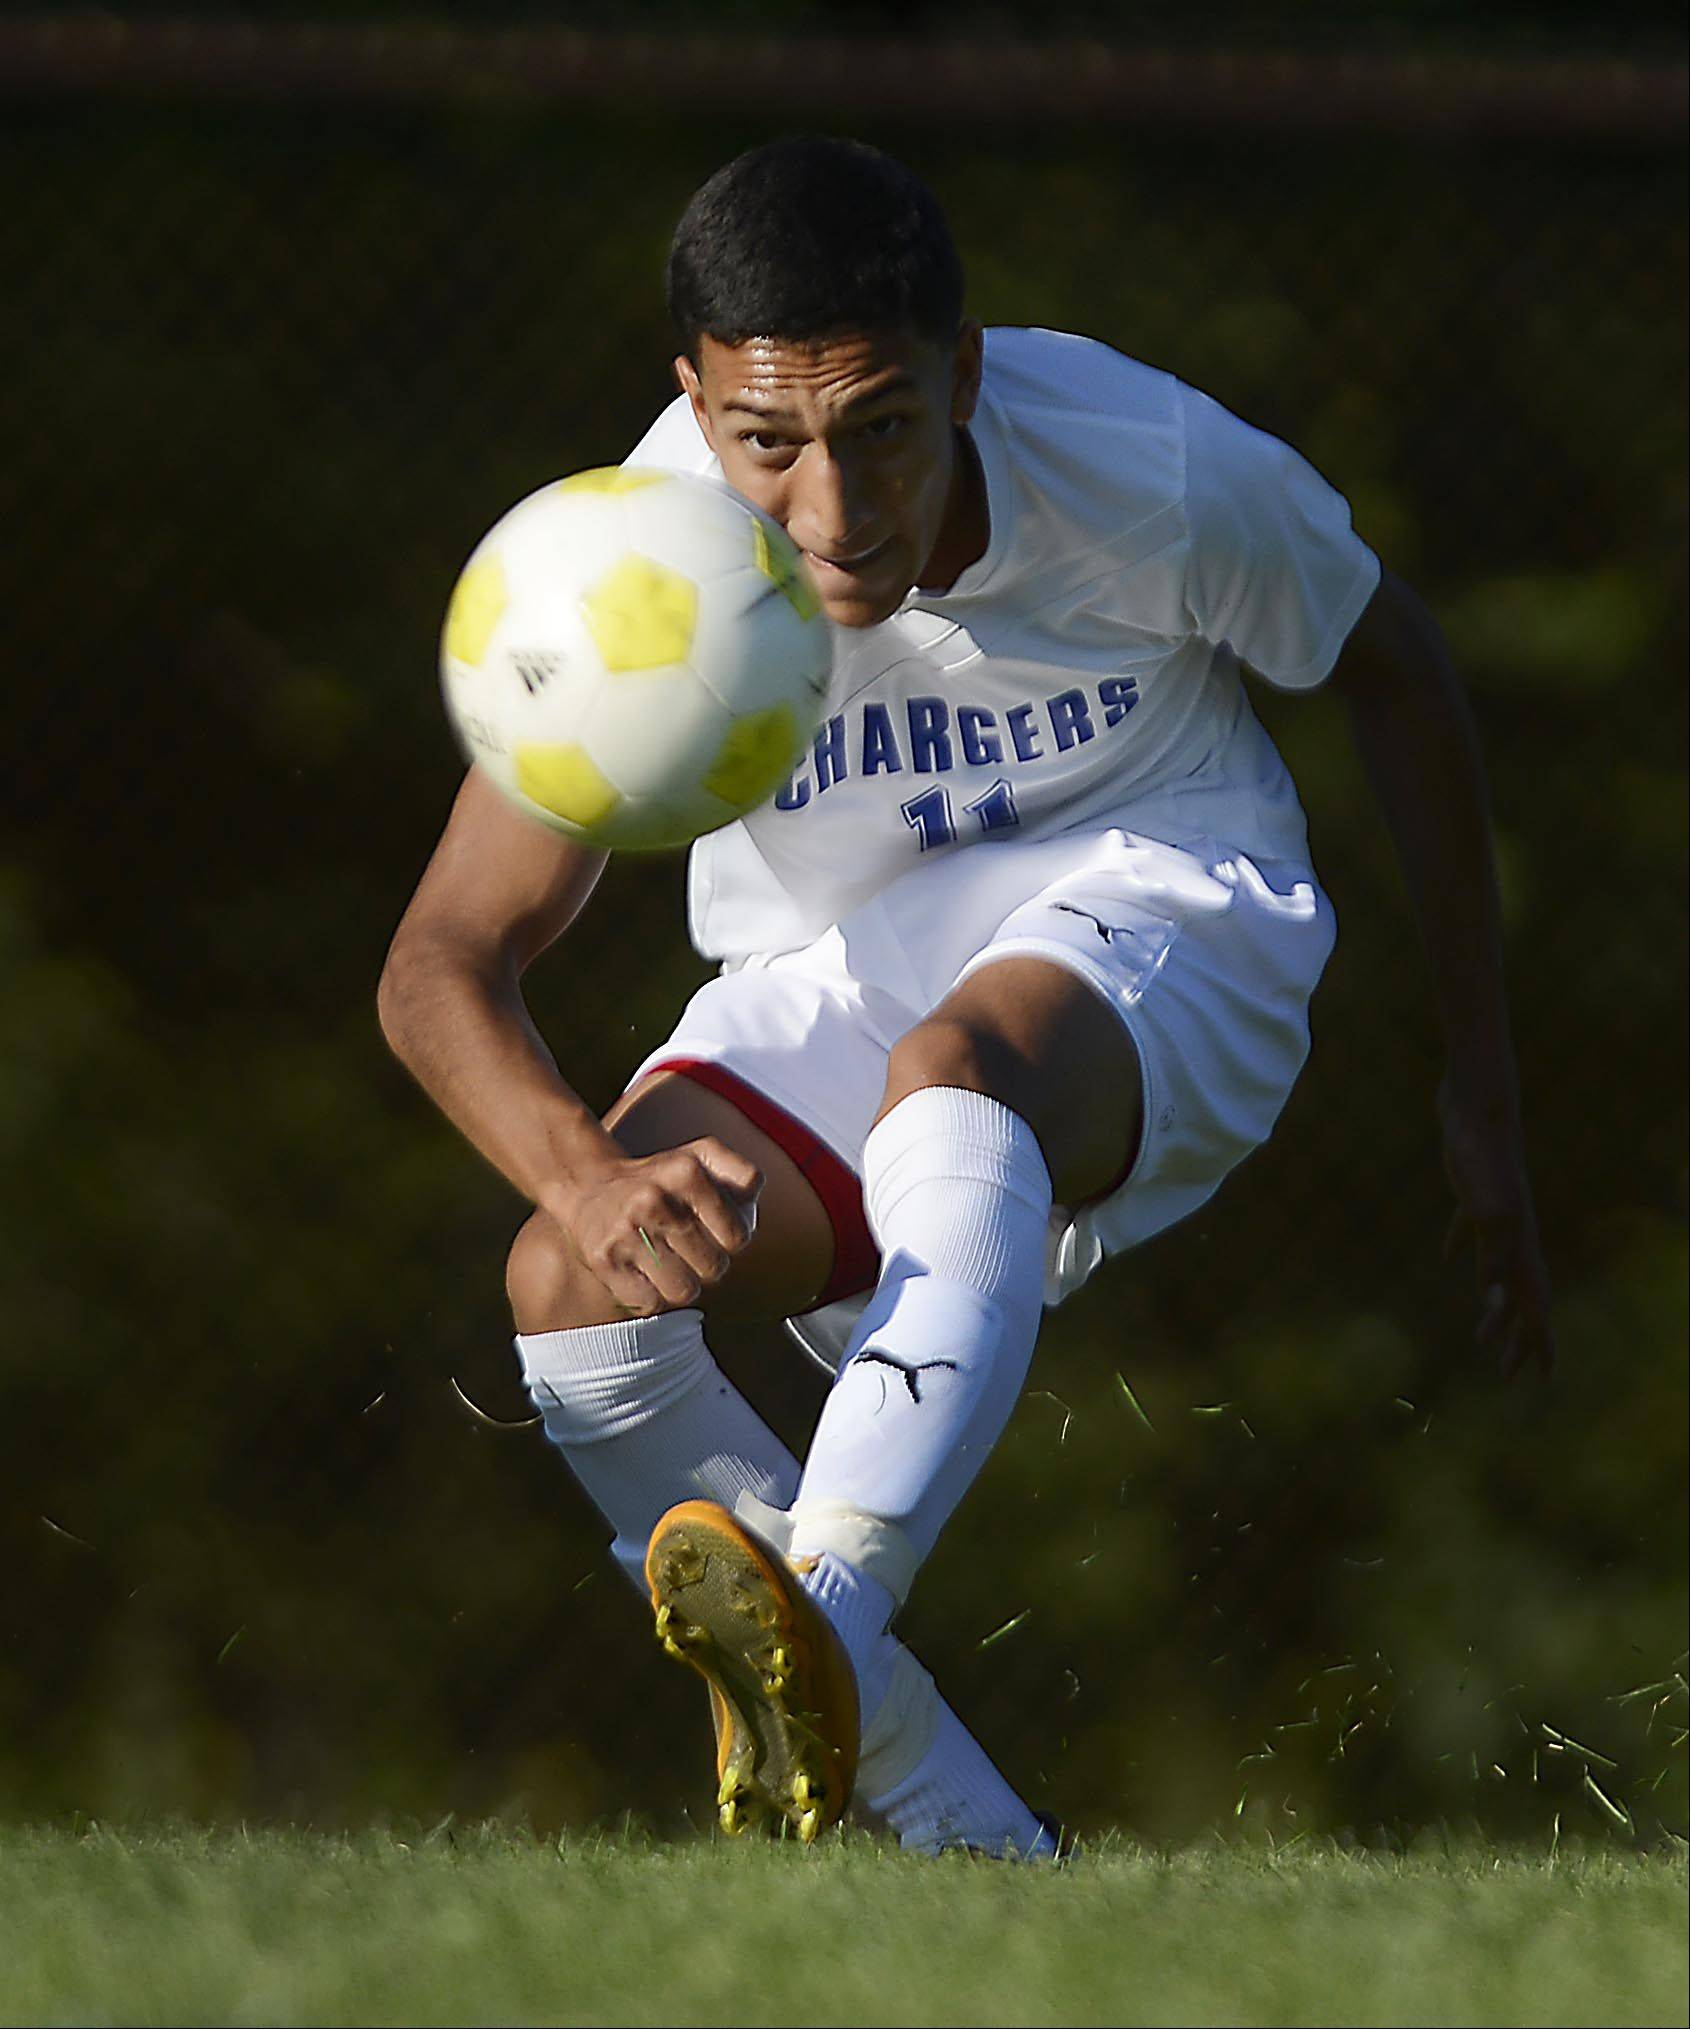 Dundee-Crown's Juan Ramos shoots against Hampshire Thursday in Carpentersville.